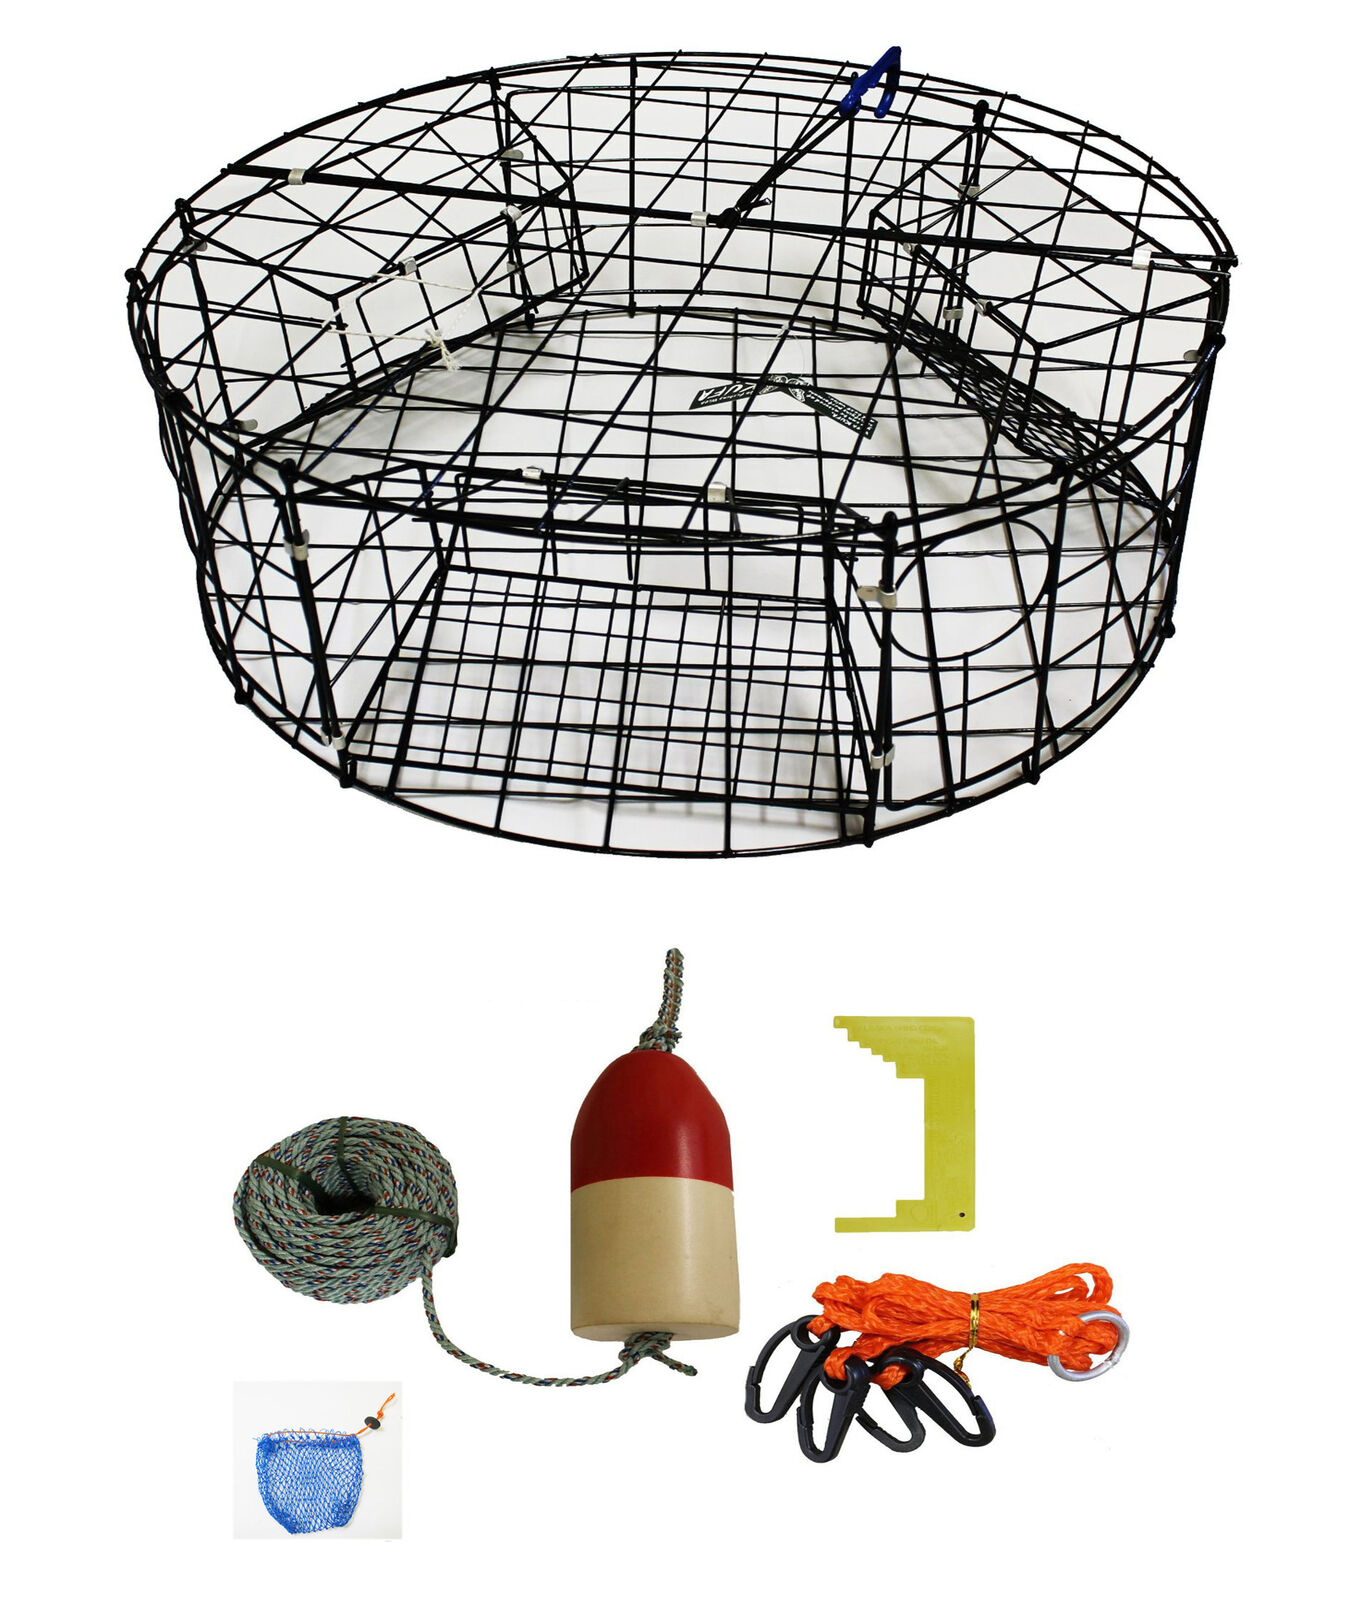 KUFA Vinyl coated Round Crab Trap & leaded rope,float,Harness,Cliper,Crb Bag